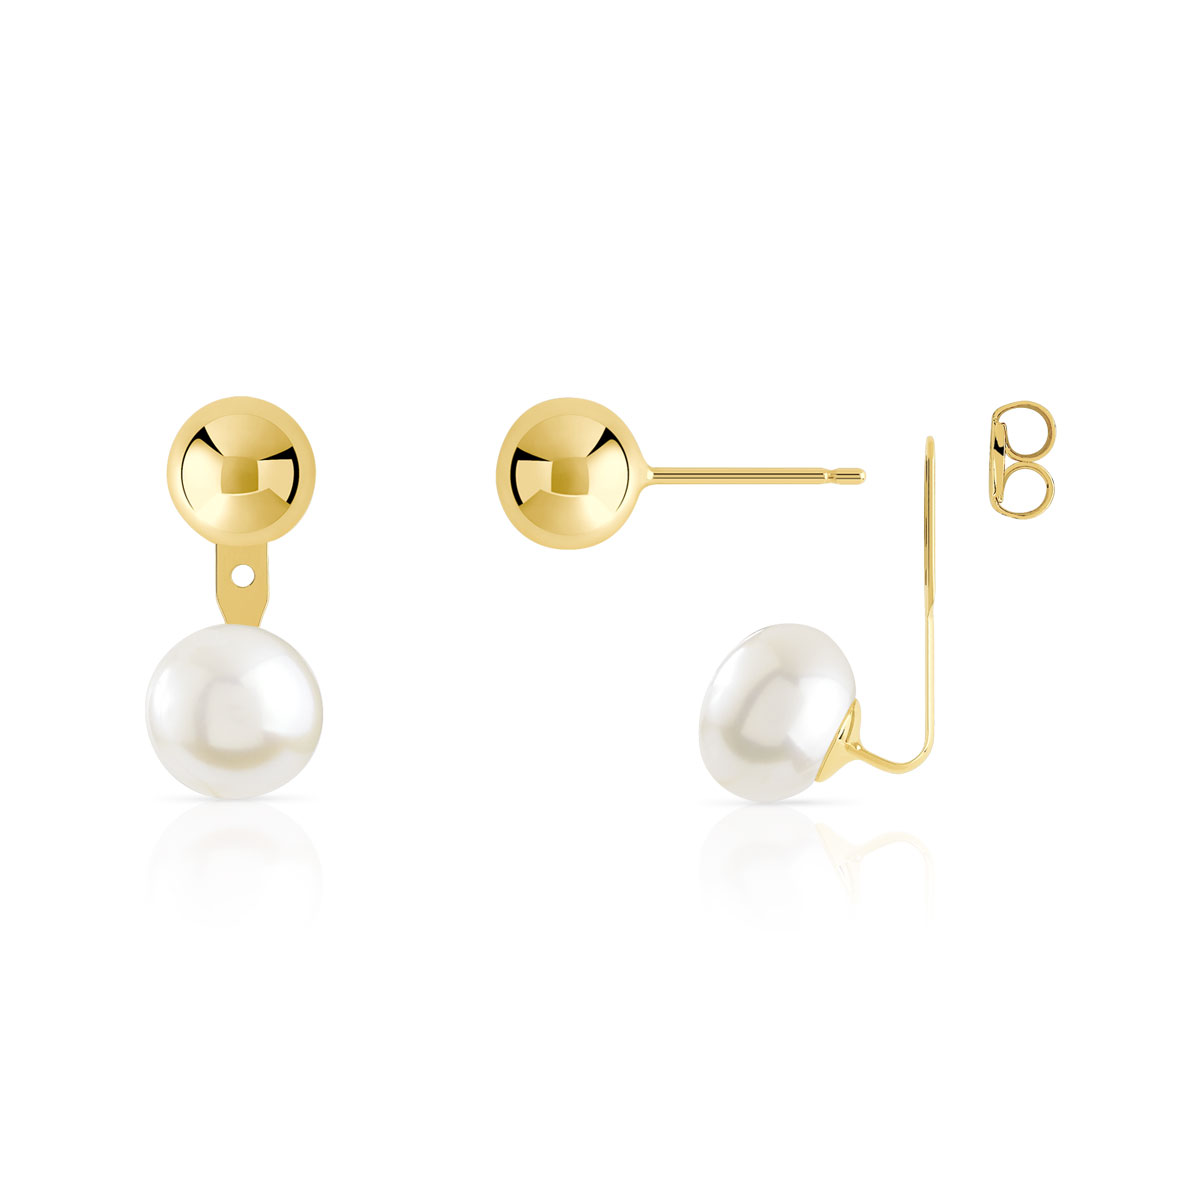 Boucles d' oreilles or 375 jaune perle de culture de chine - vue V1